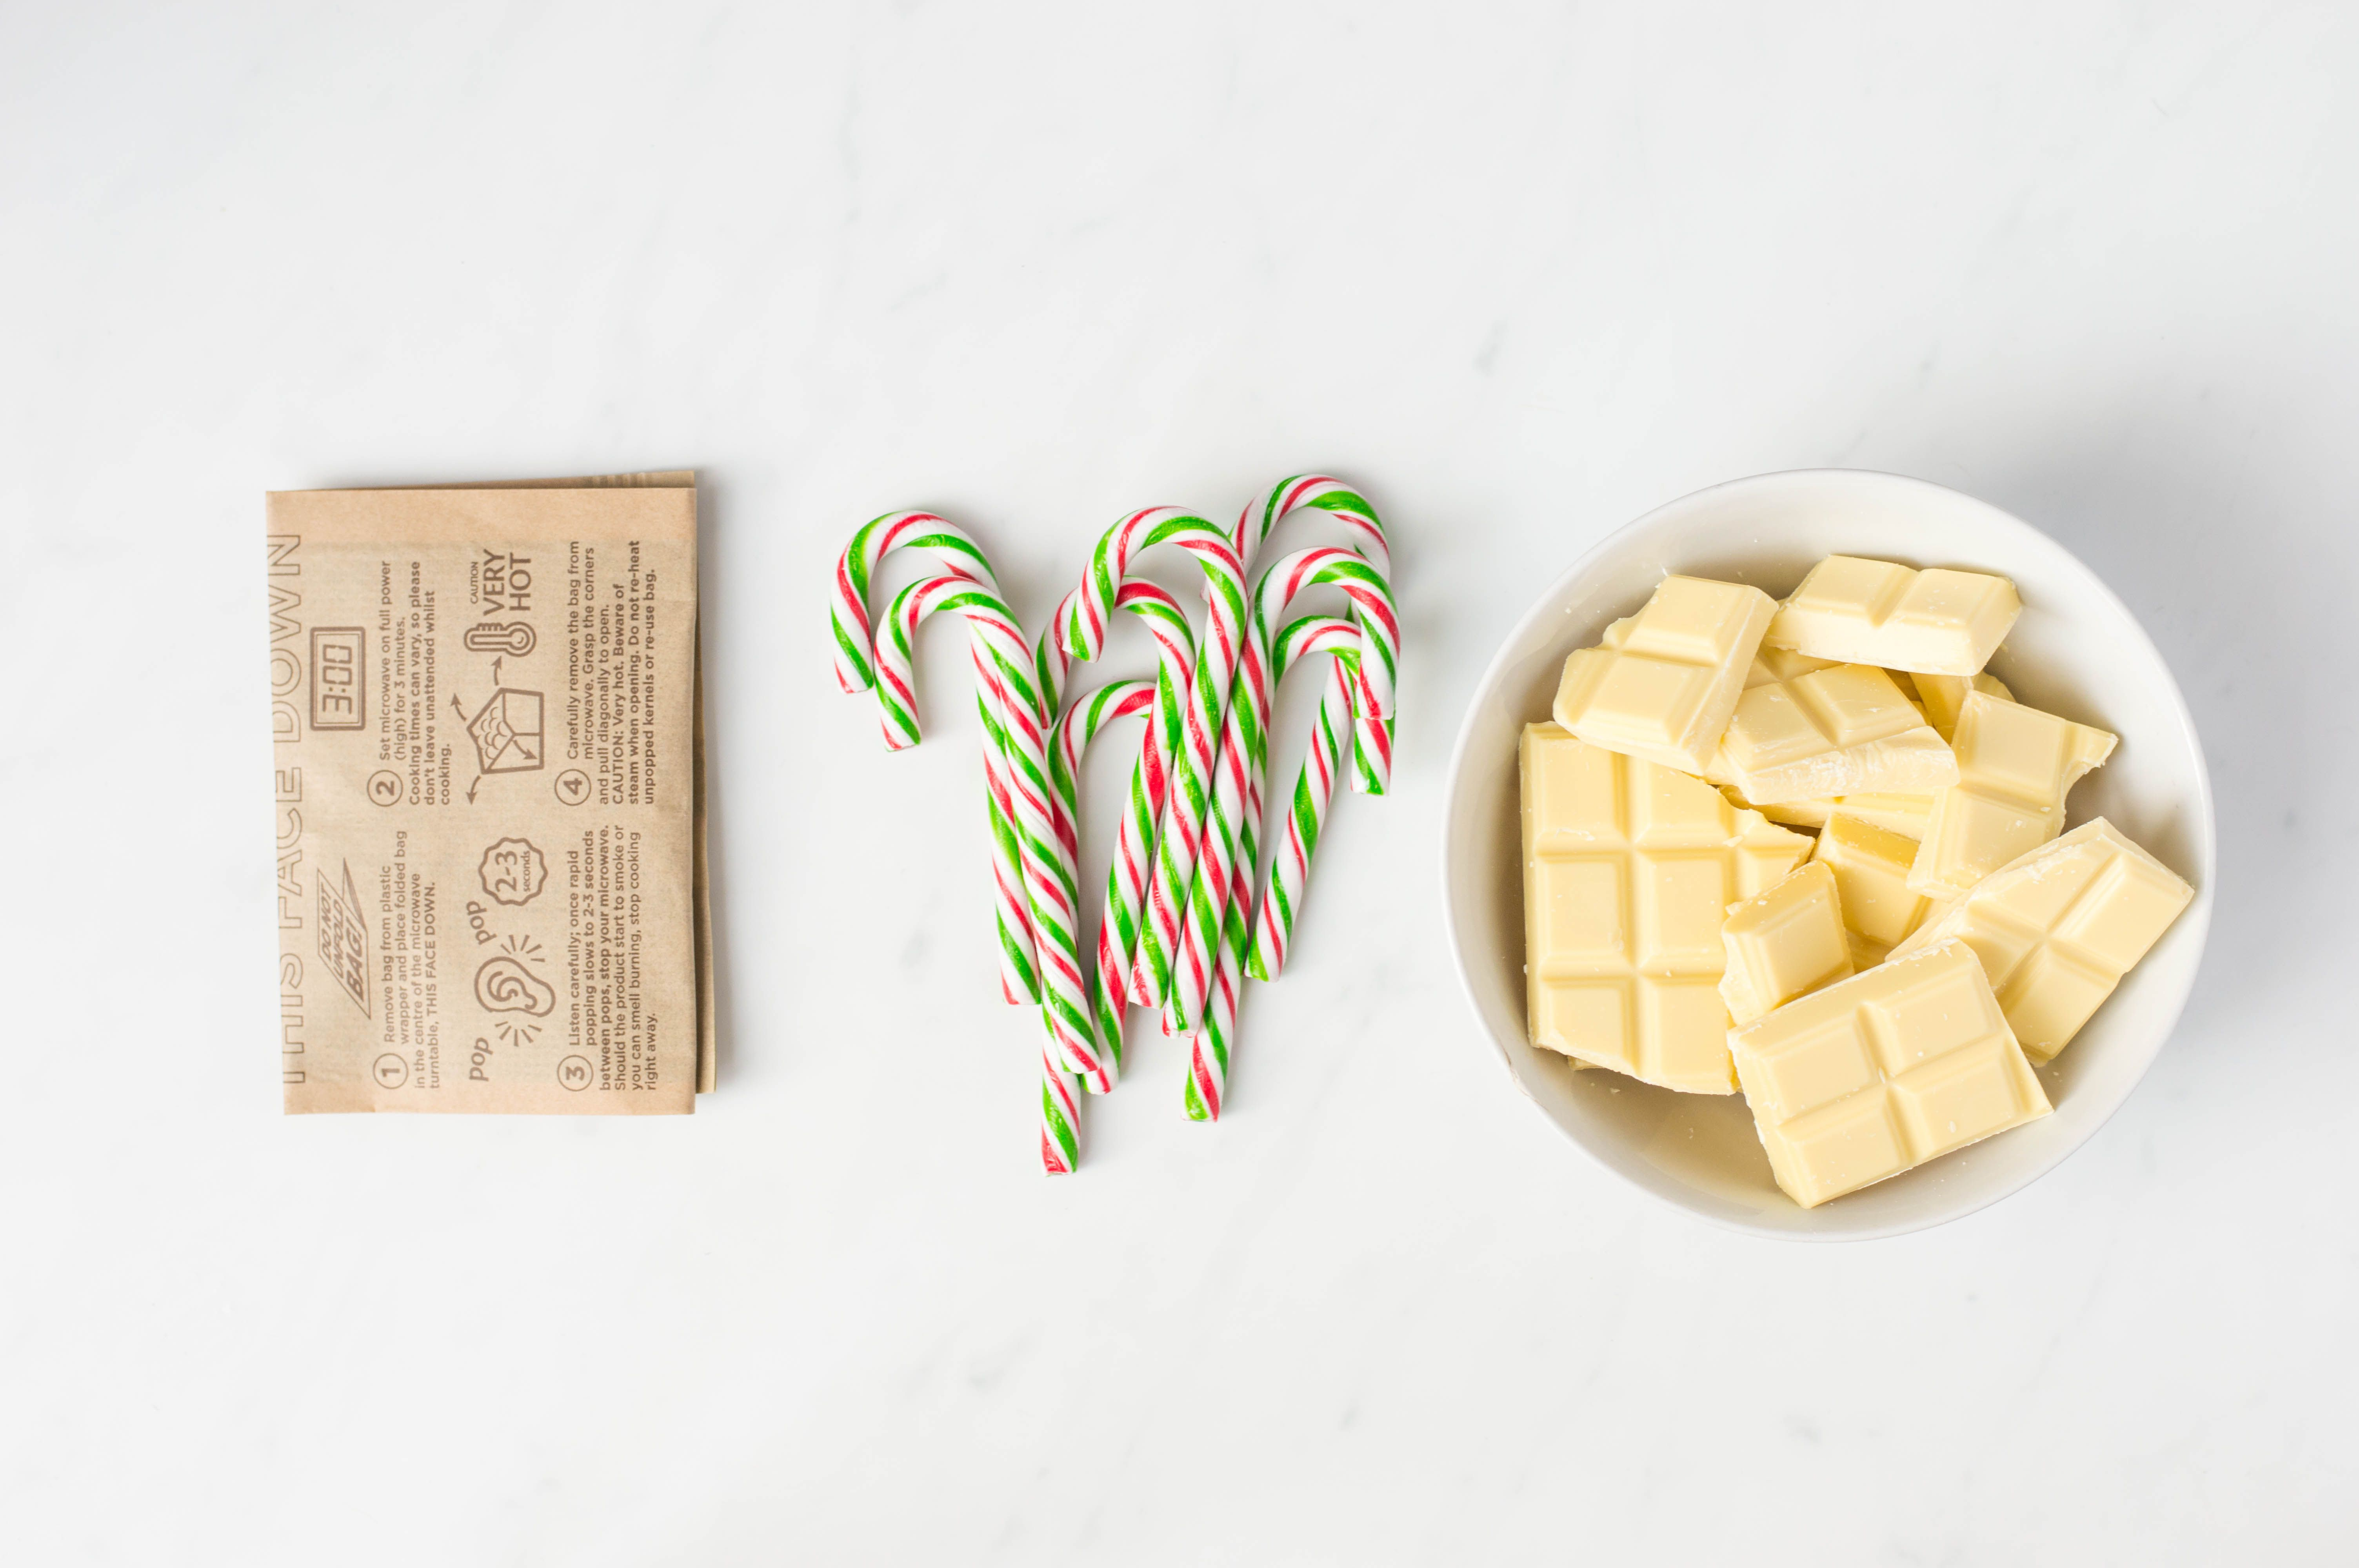 Ingredients for candy cane popcorn